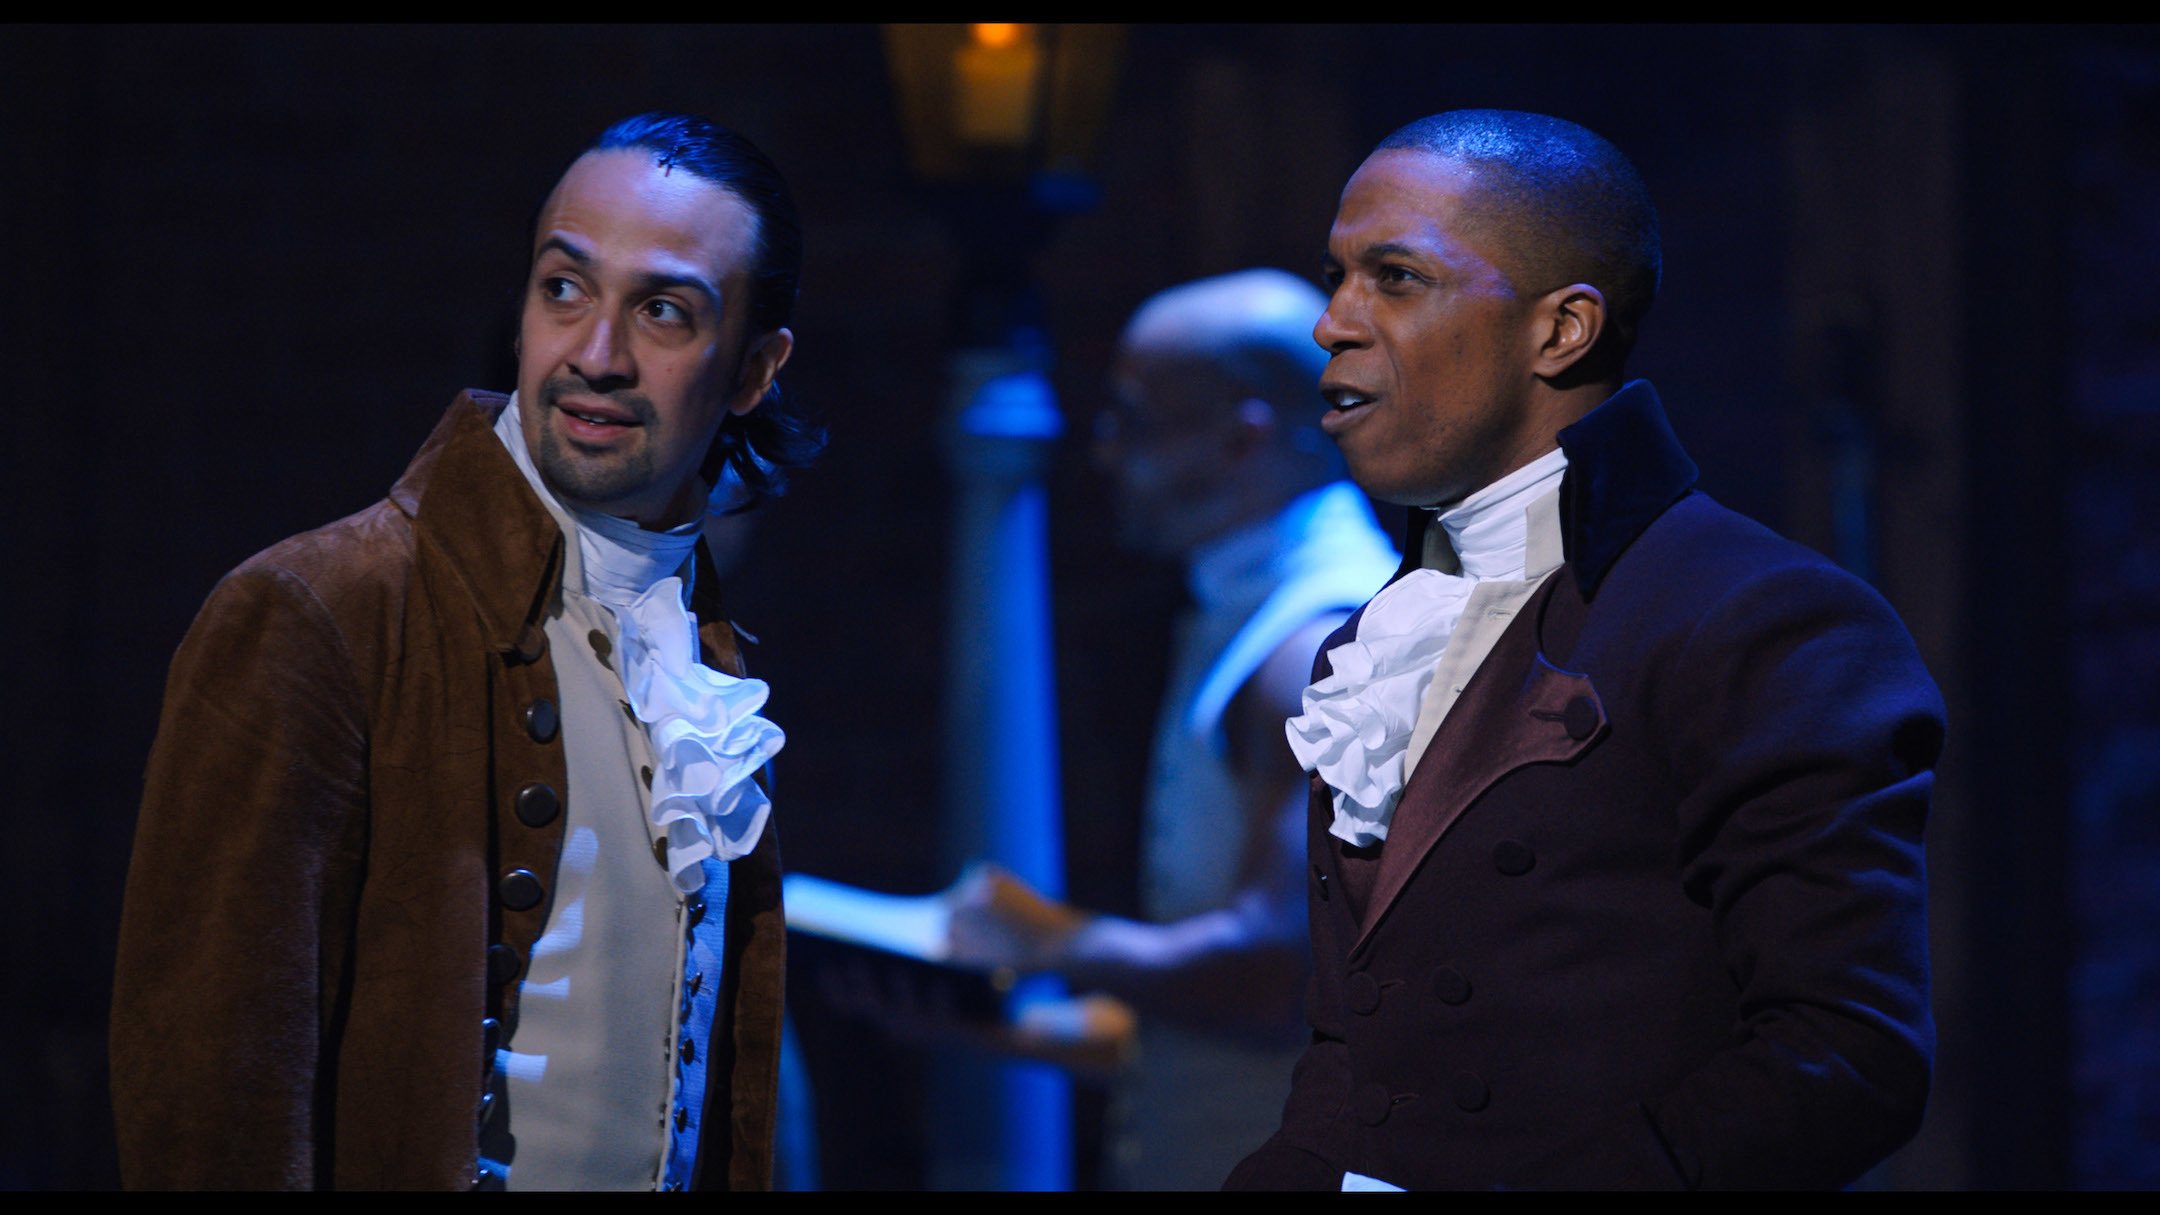 Lin-Manuel Miranda is Alexander Hamilton and Leslie Odom, Jr. is Aaron Burr in HAMILTON, the filmed version of the original Broadway production.